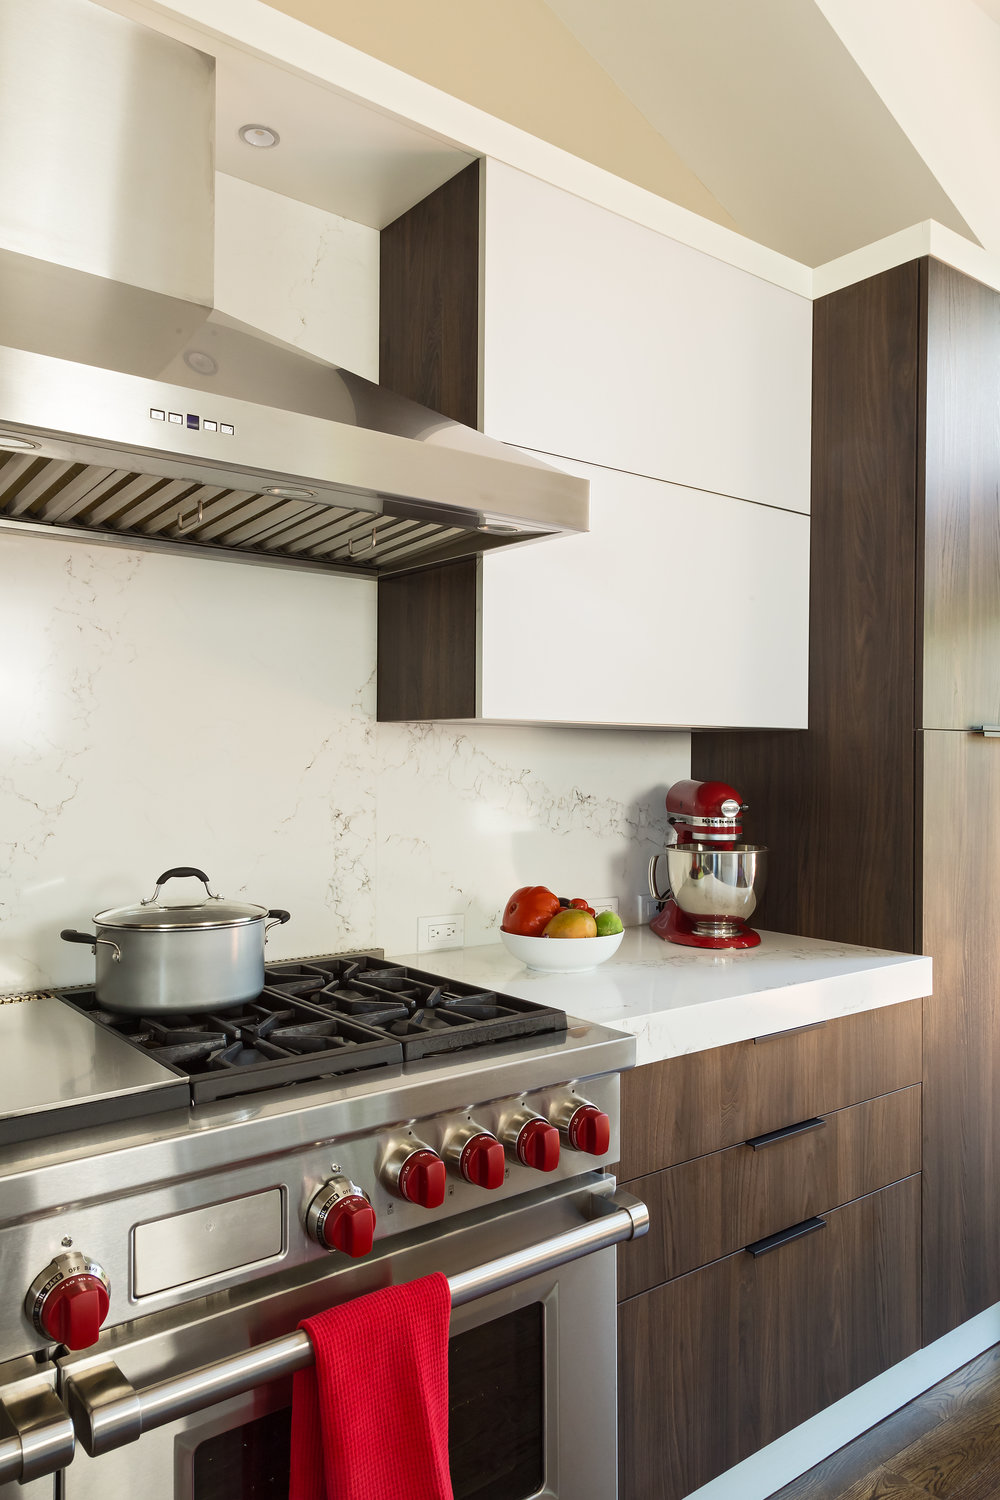 Contemporary style kitchen with range oven and range hood